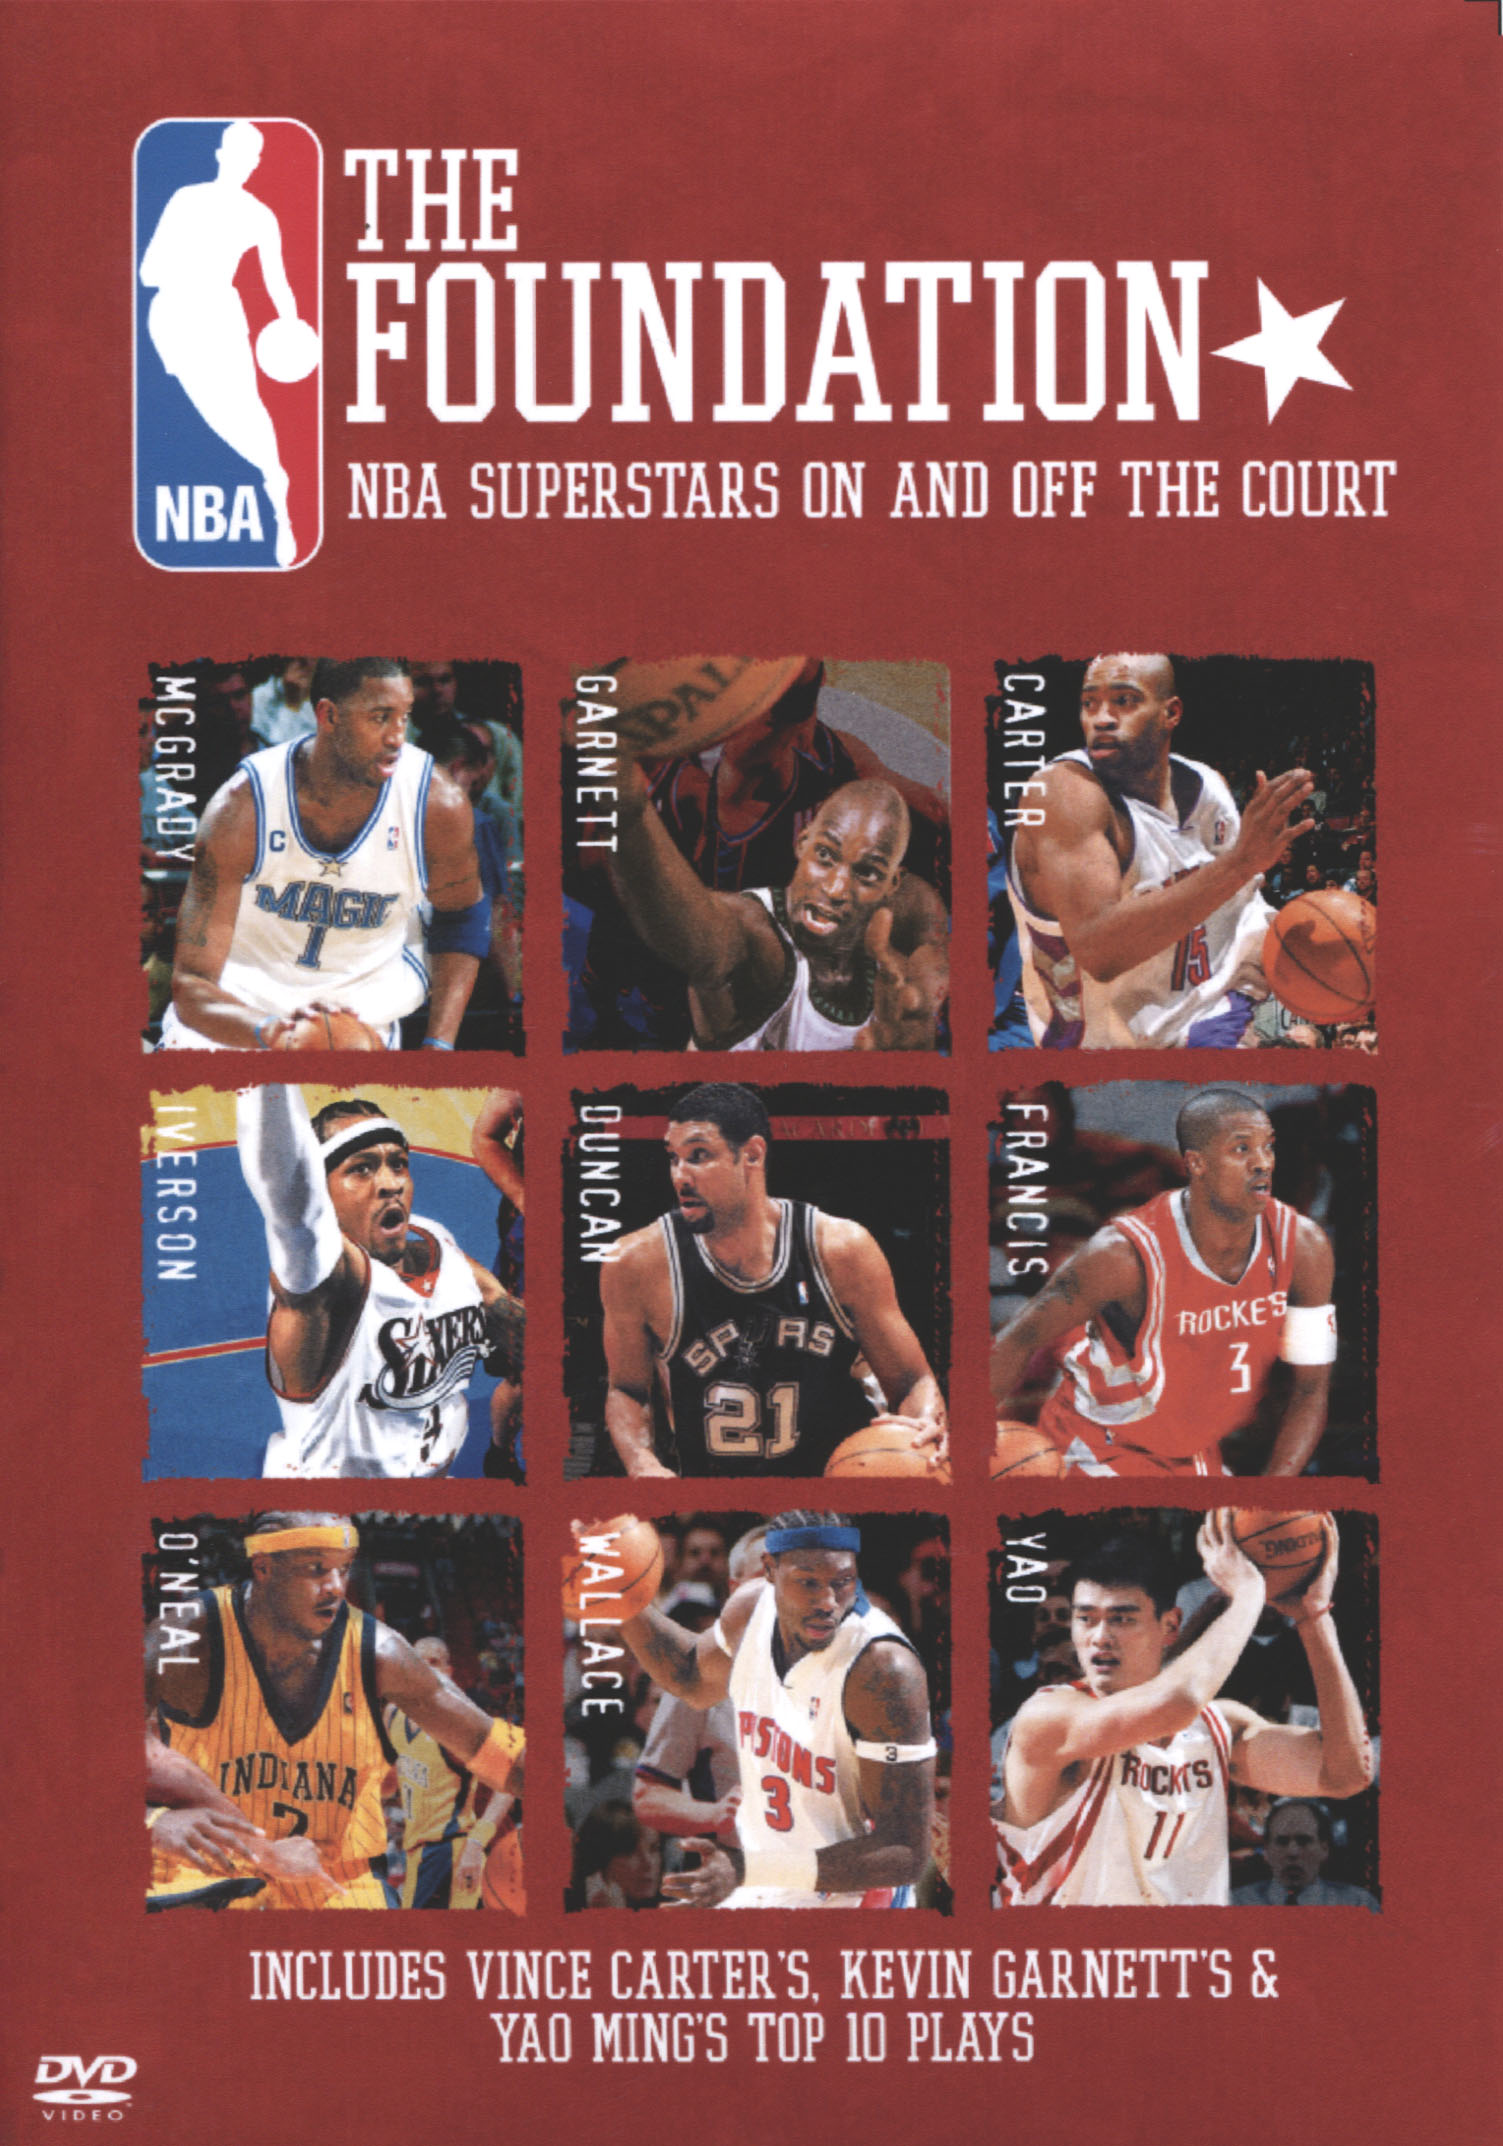 NBA: The Foundation - NBA Superstars On and Off the Court